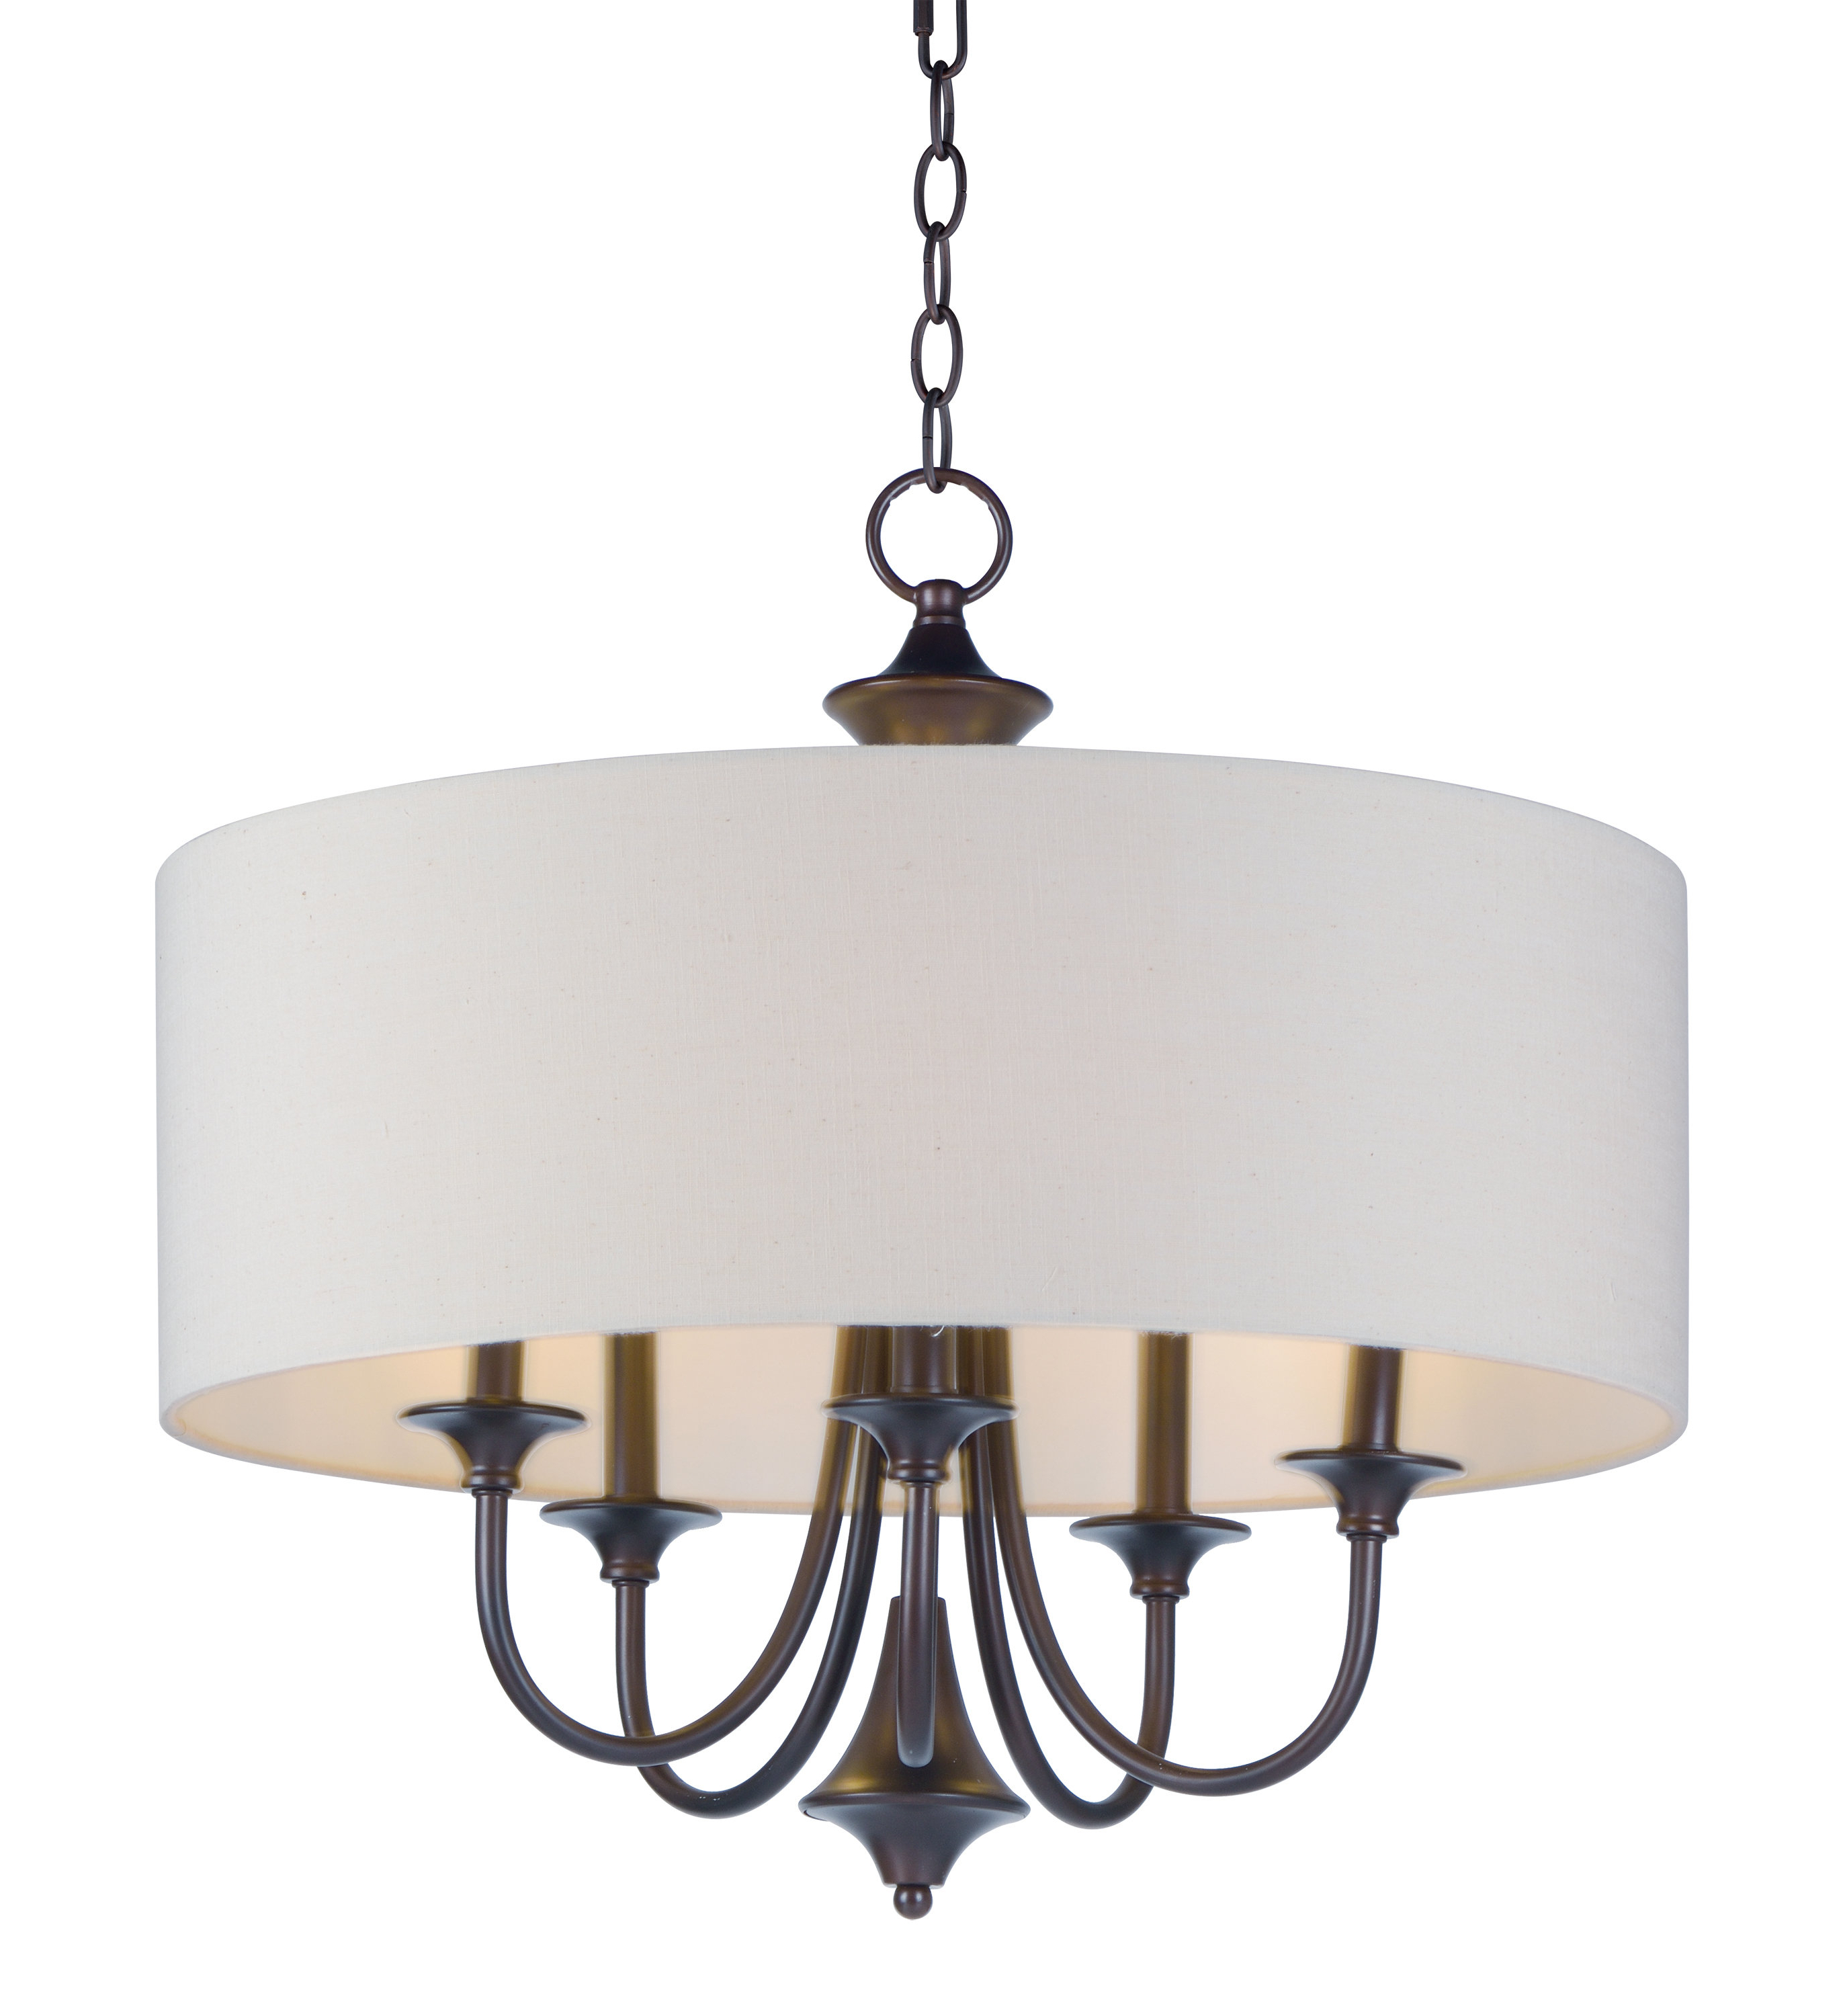 Abel 5 Light Drum Chandeliers With Recent Darby Home Co Becher 5 Light Drum Chandelier (View 8 of 25)